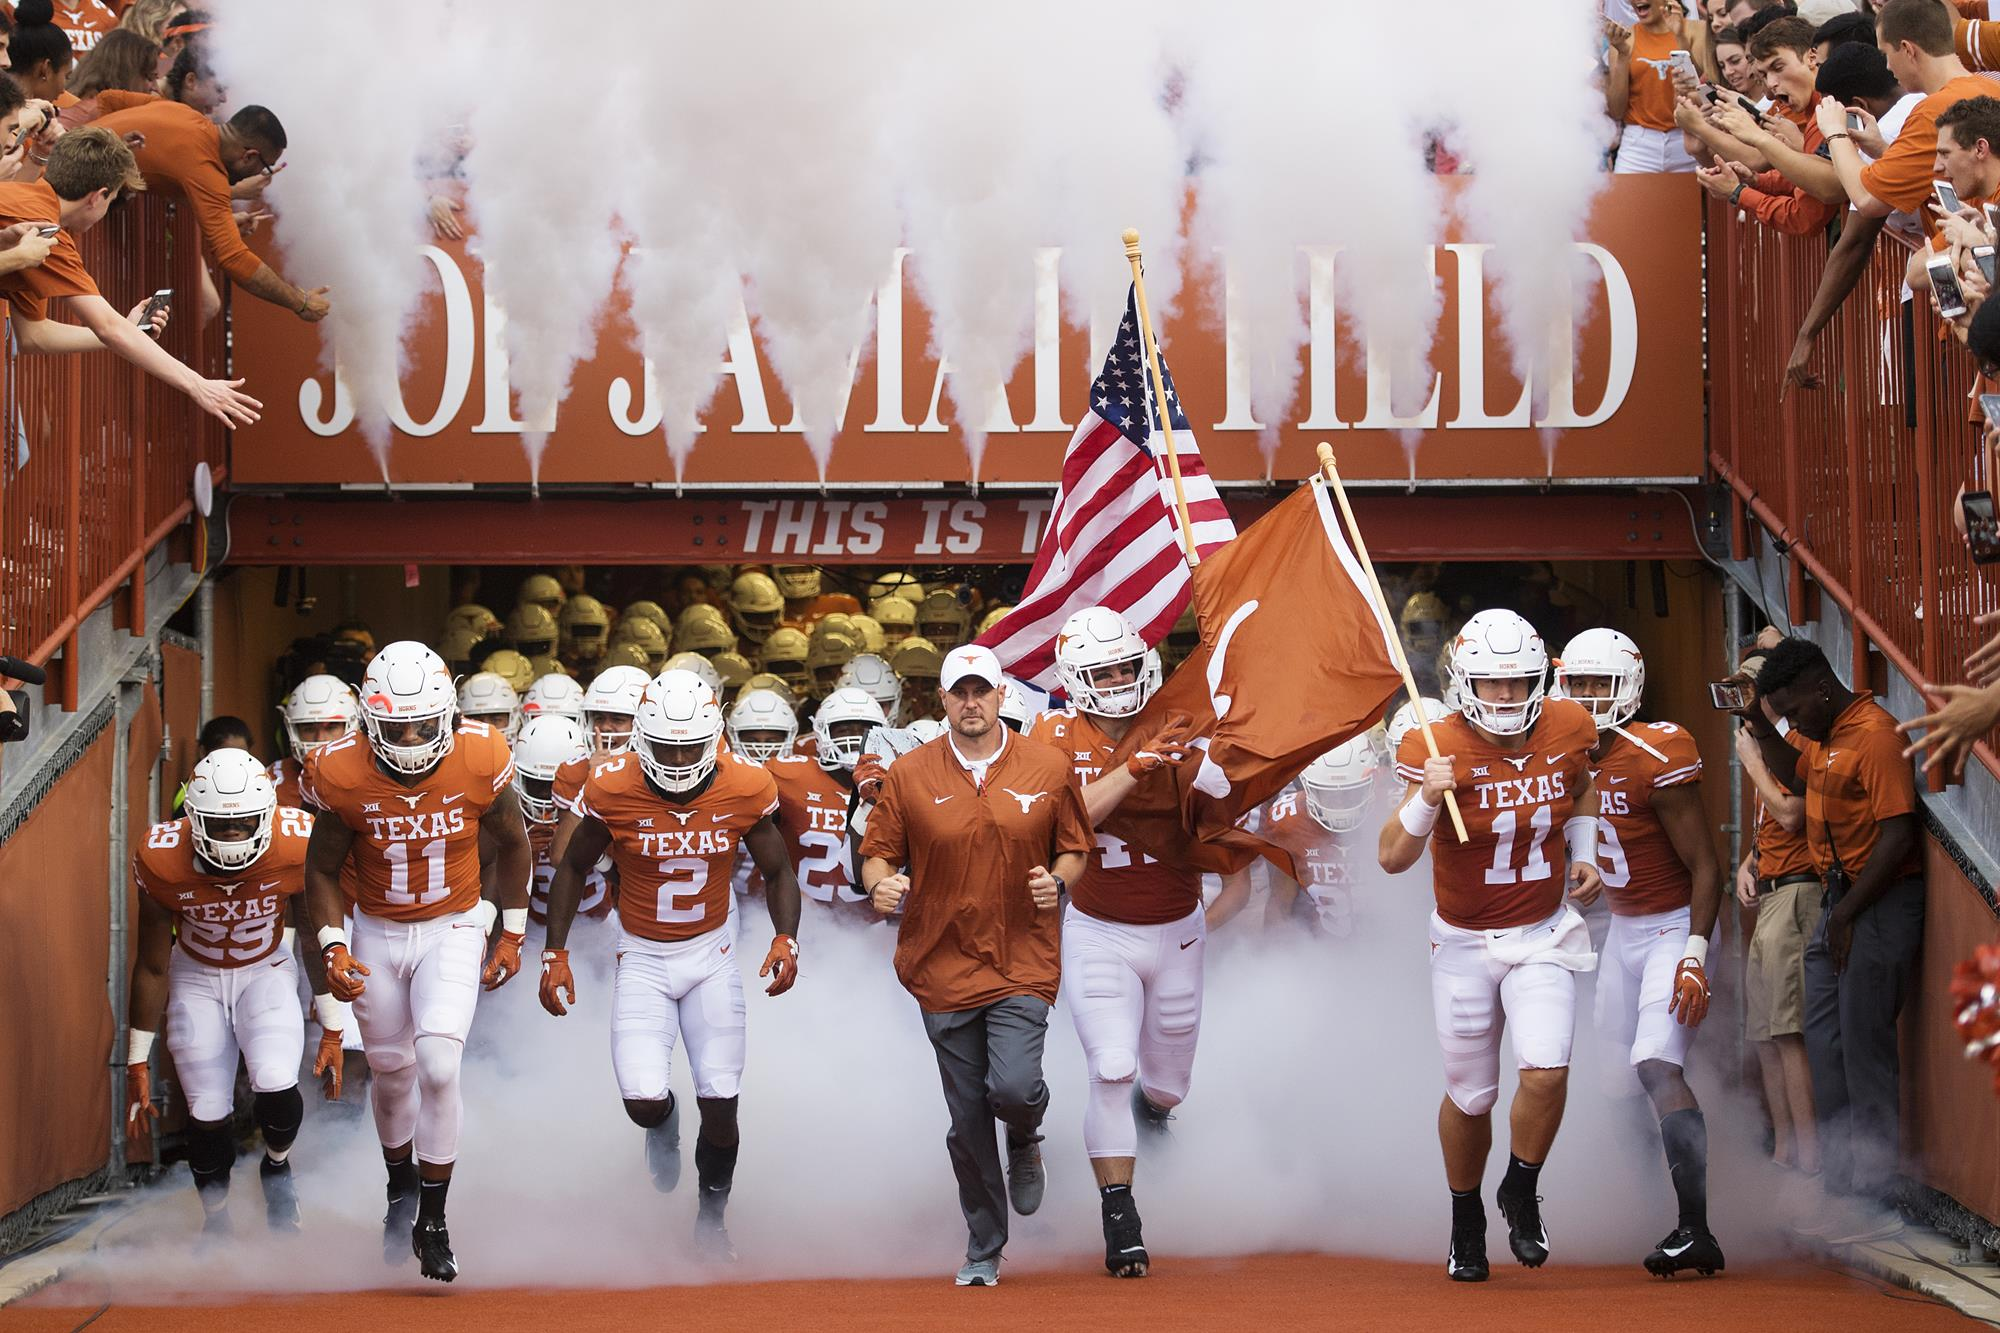 Big 12 Conference announces 2019 Football schedule - University of Texas  Athletics